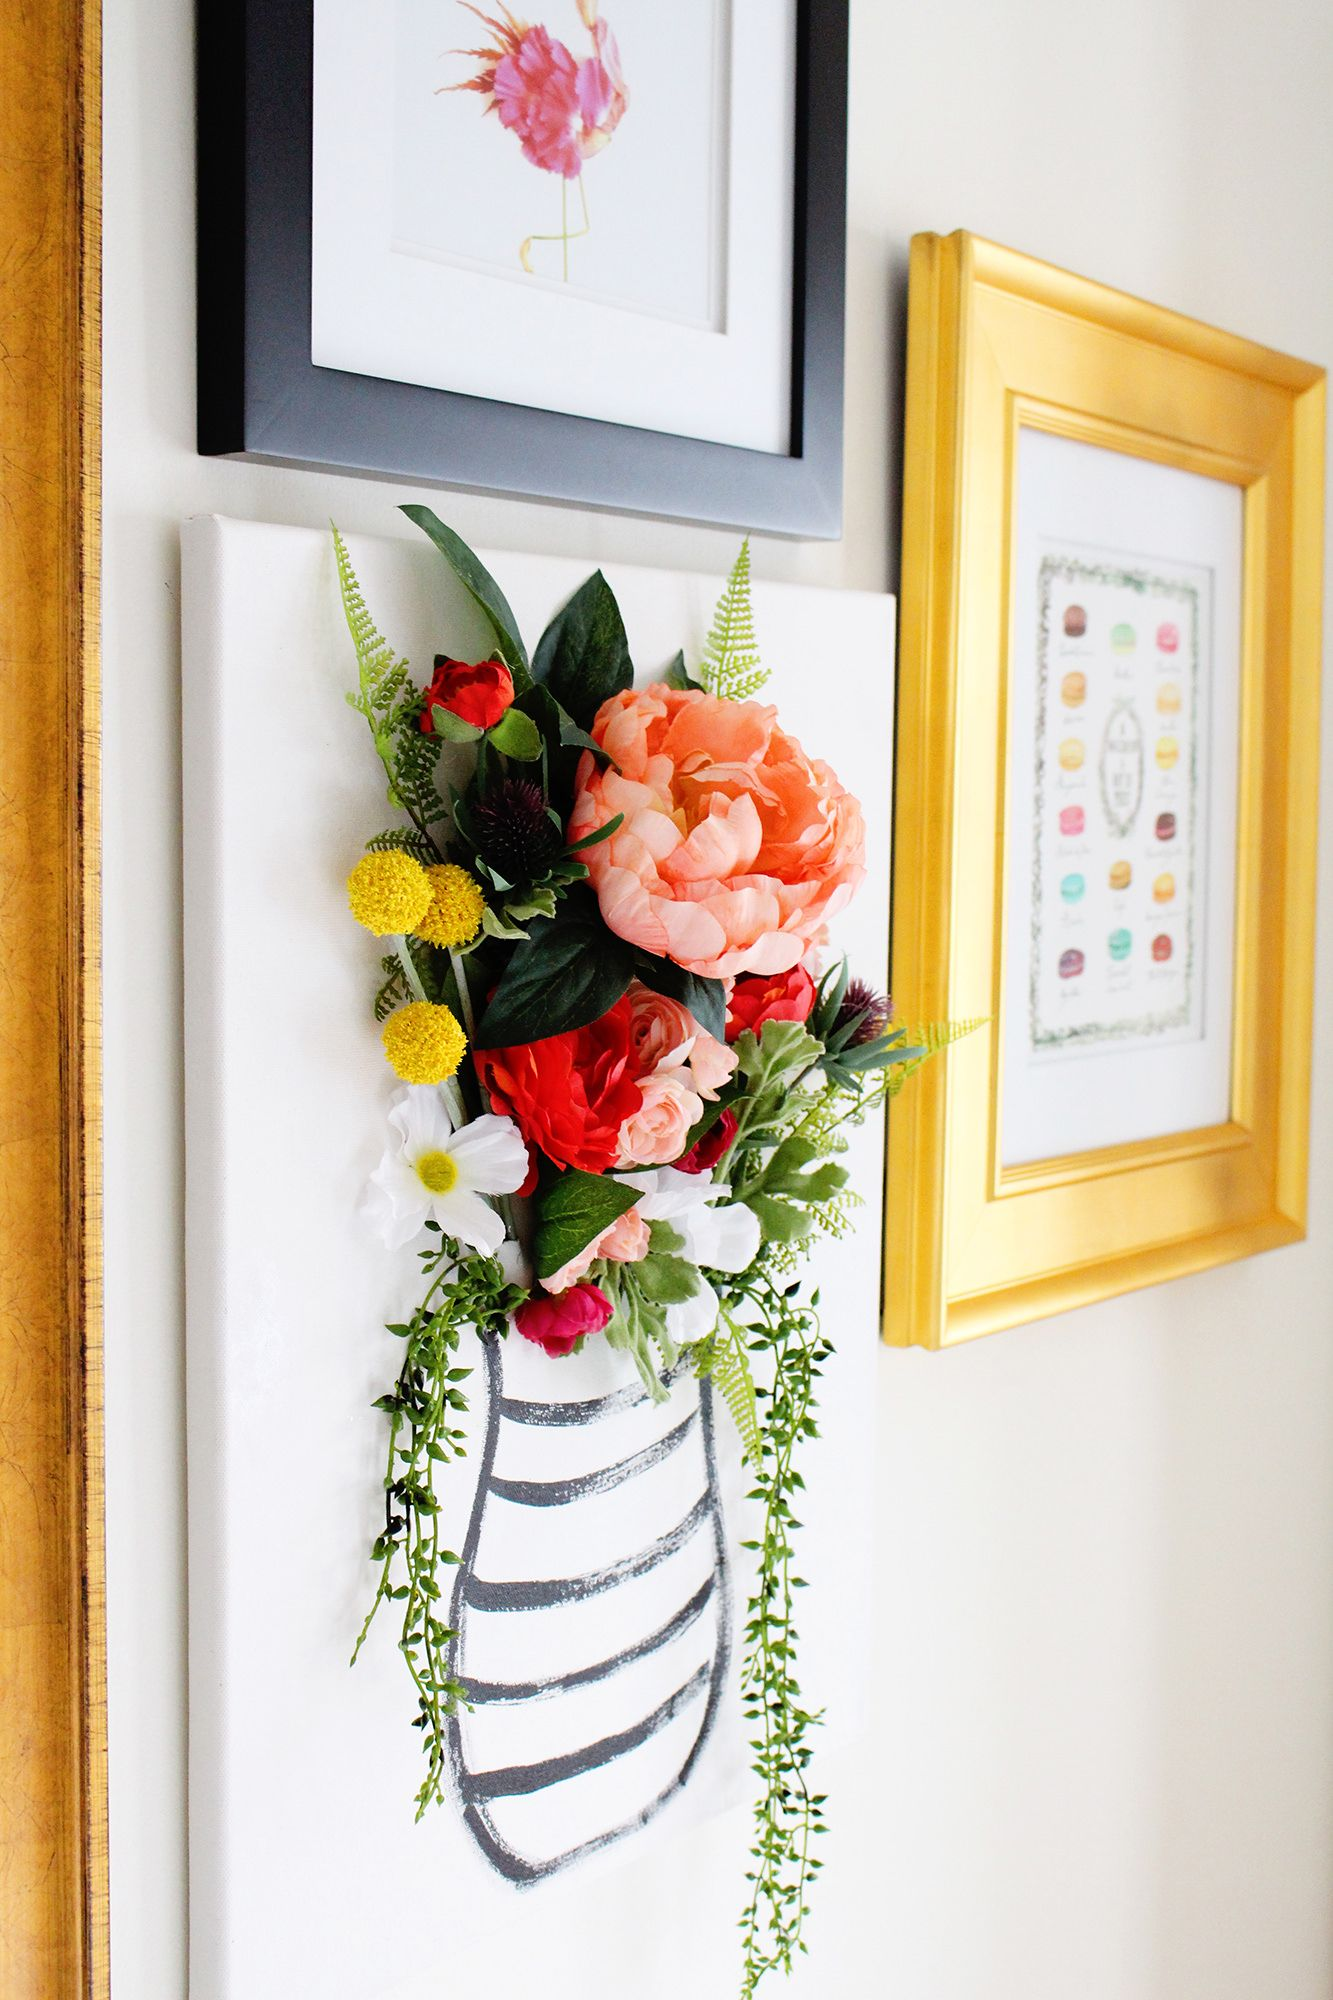 Diy 3 D Flower Canvas Art Part 1 Diy Decor Pinterest Diy